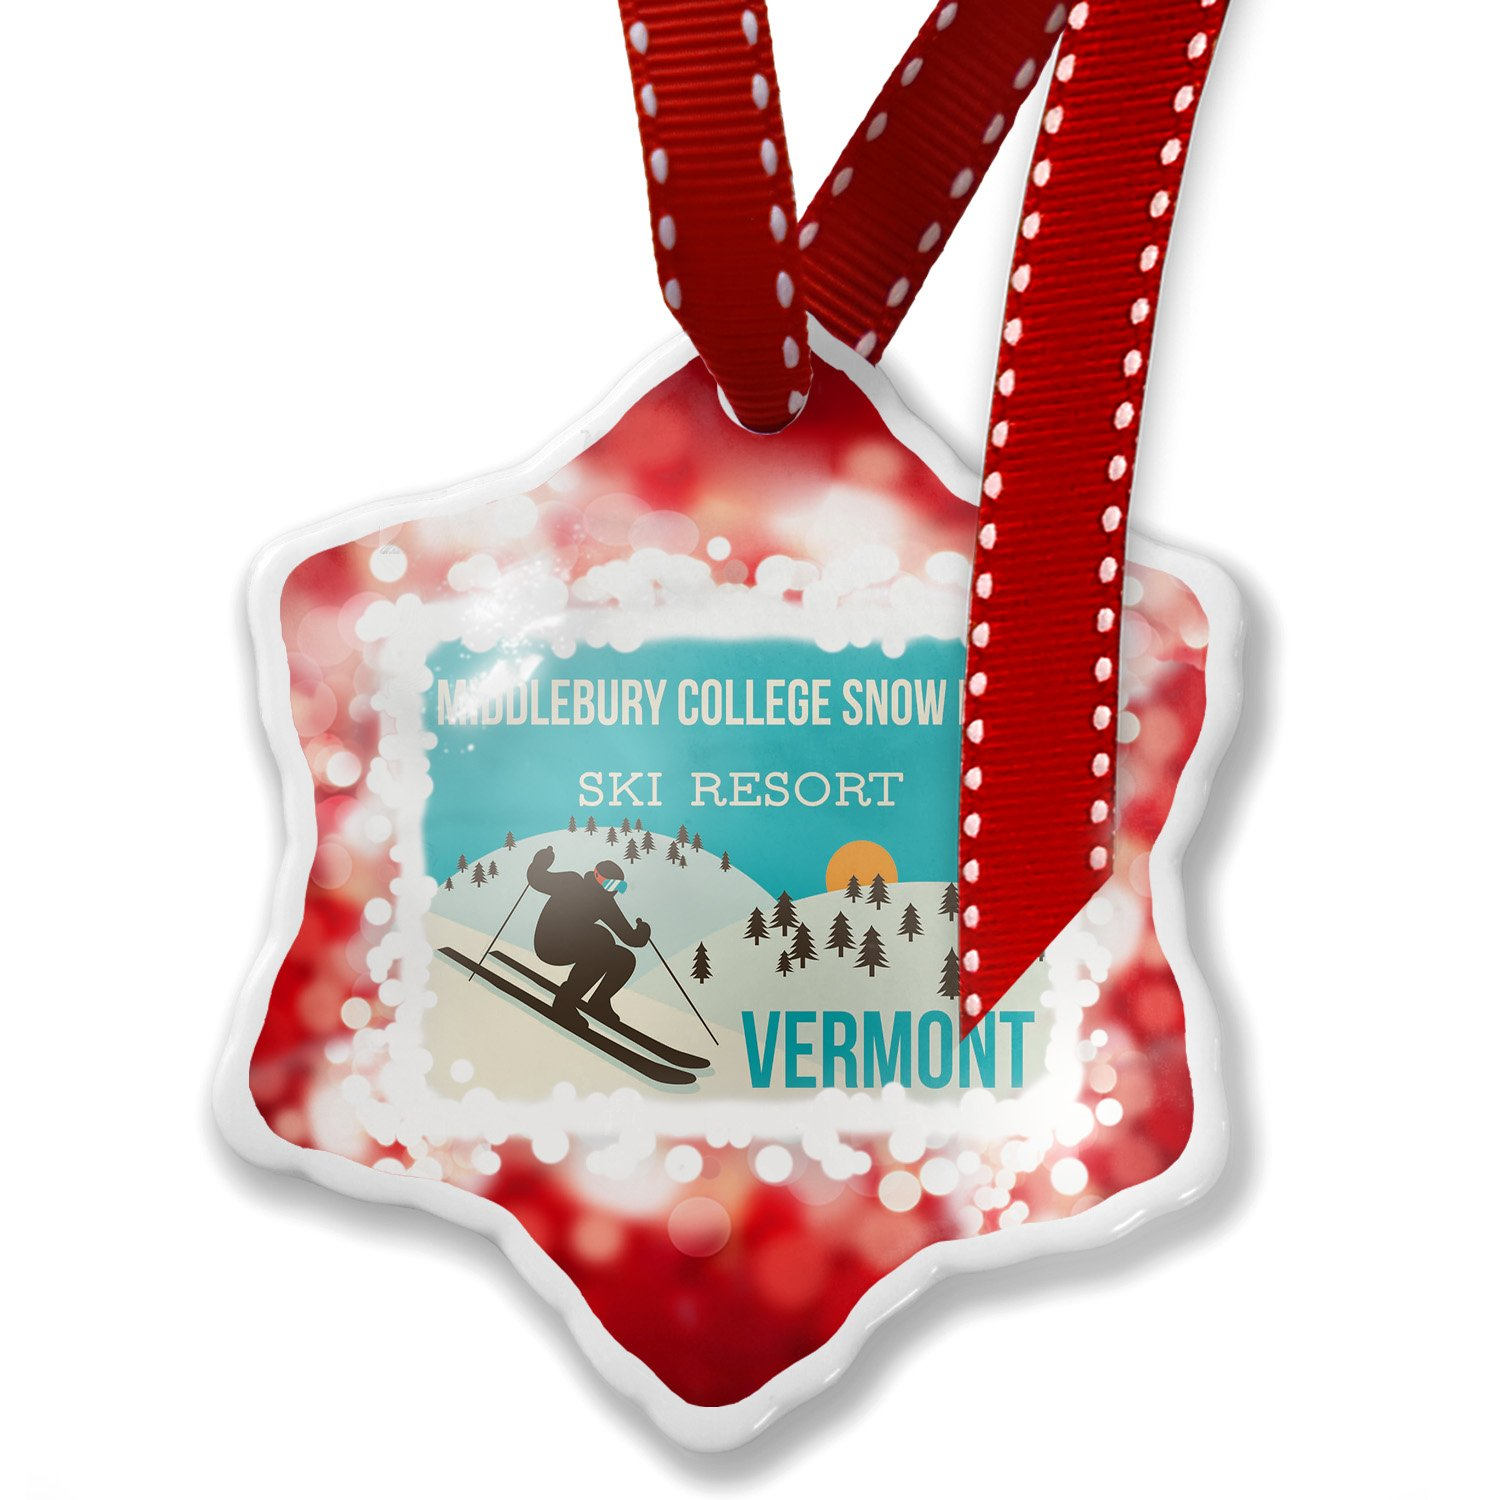 Christmas Ornament Middlebury College Snow Bow Ski Resort - Vermont Ski Resort, red - Neonblond by NEONBLOND (Image #1)